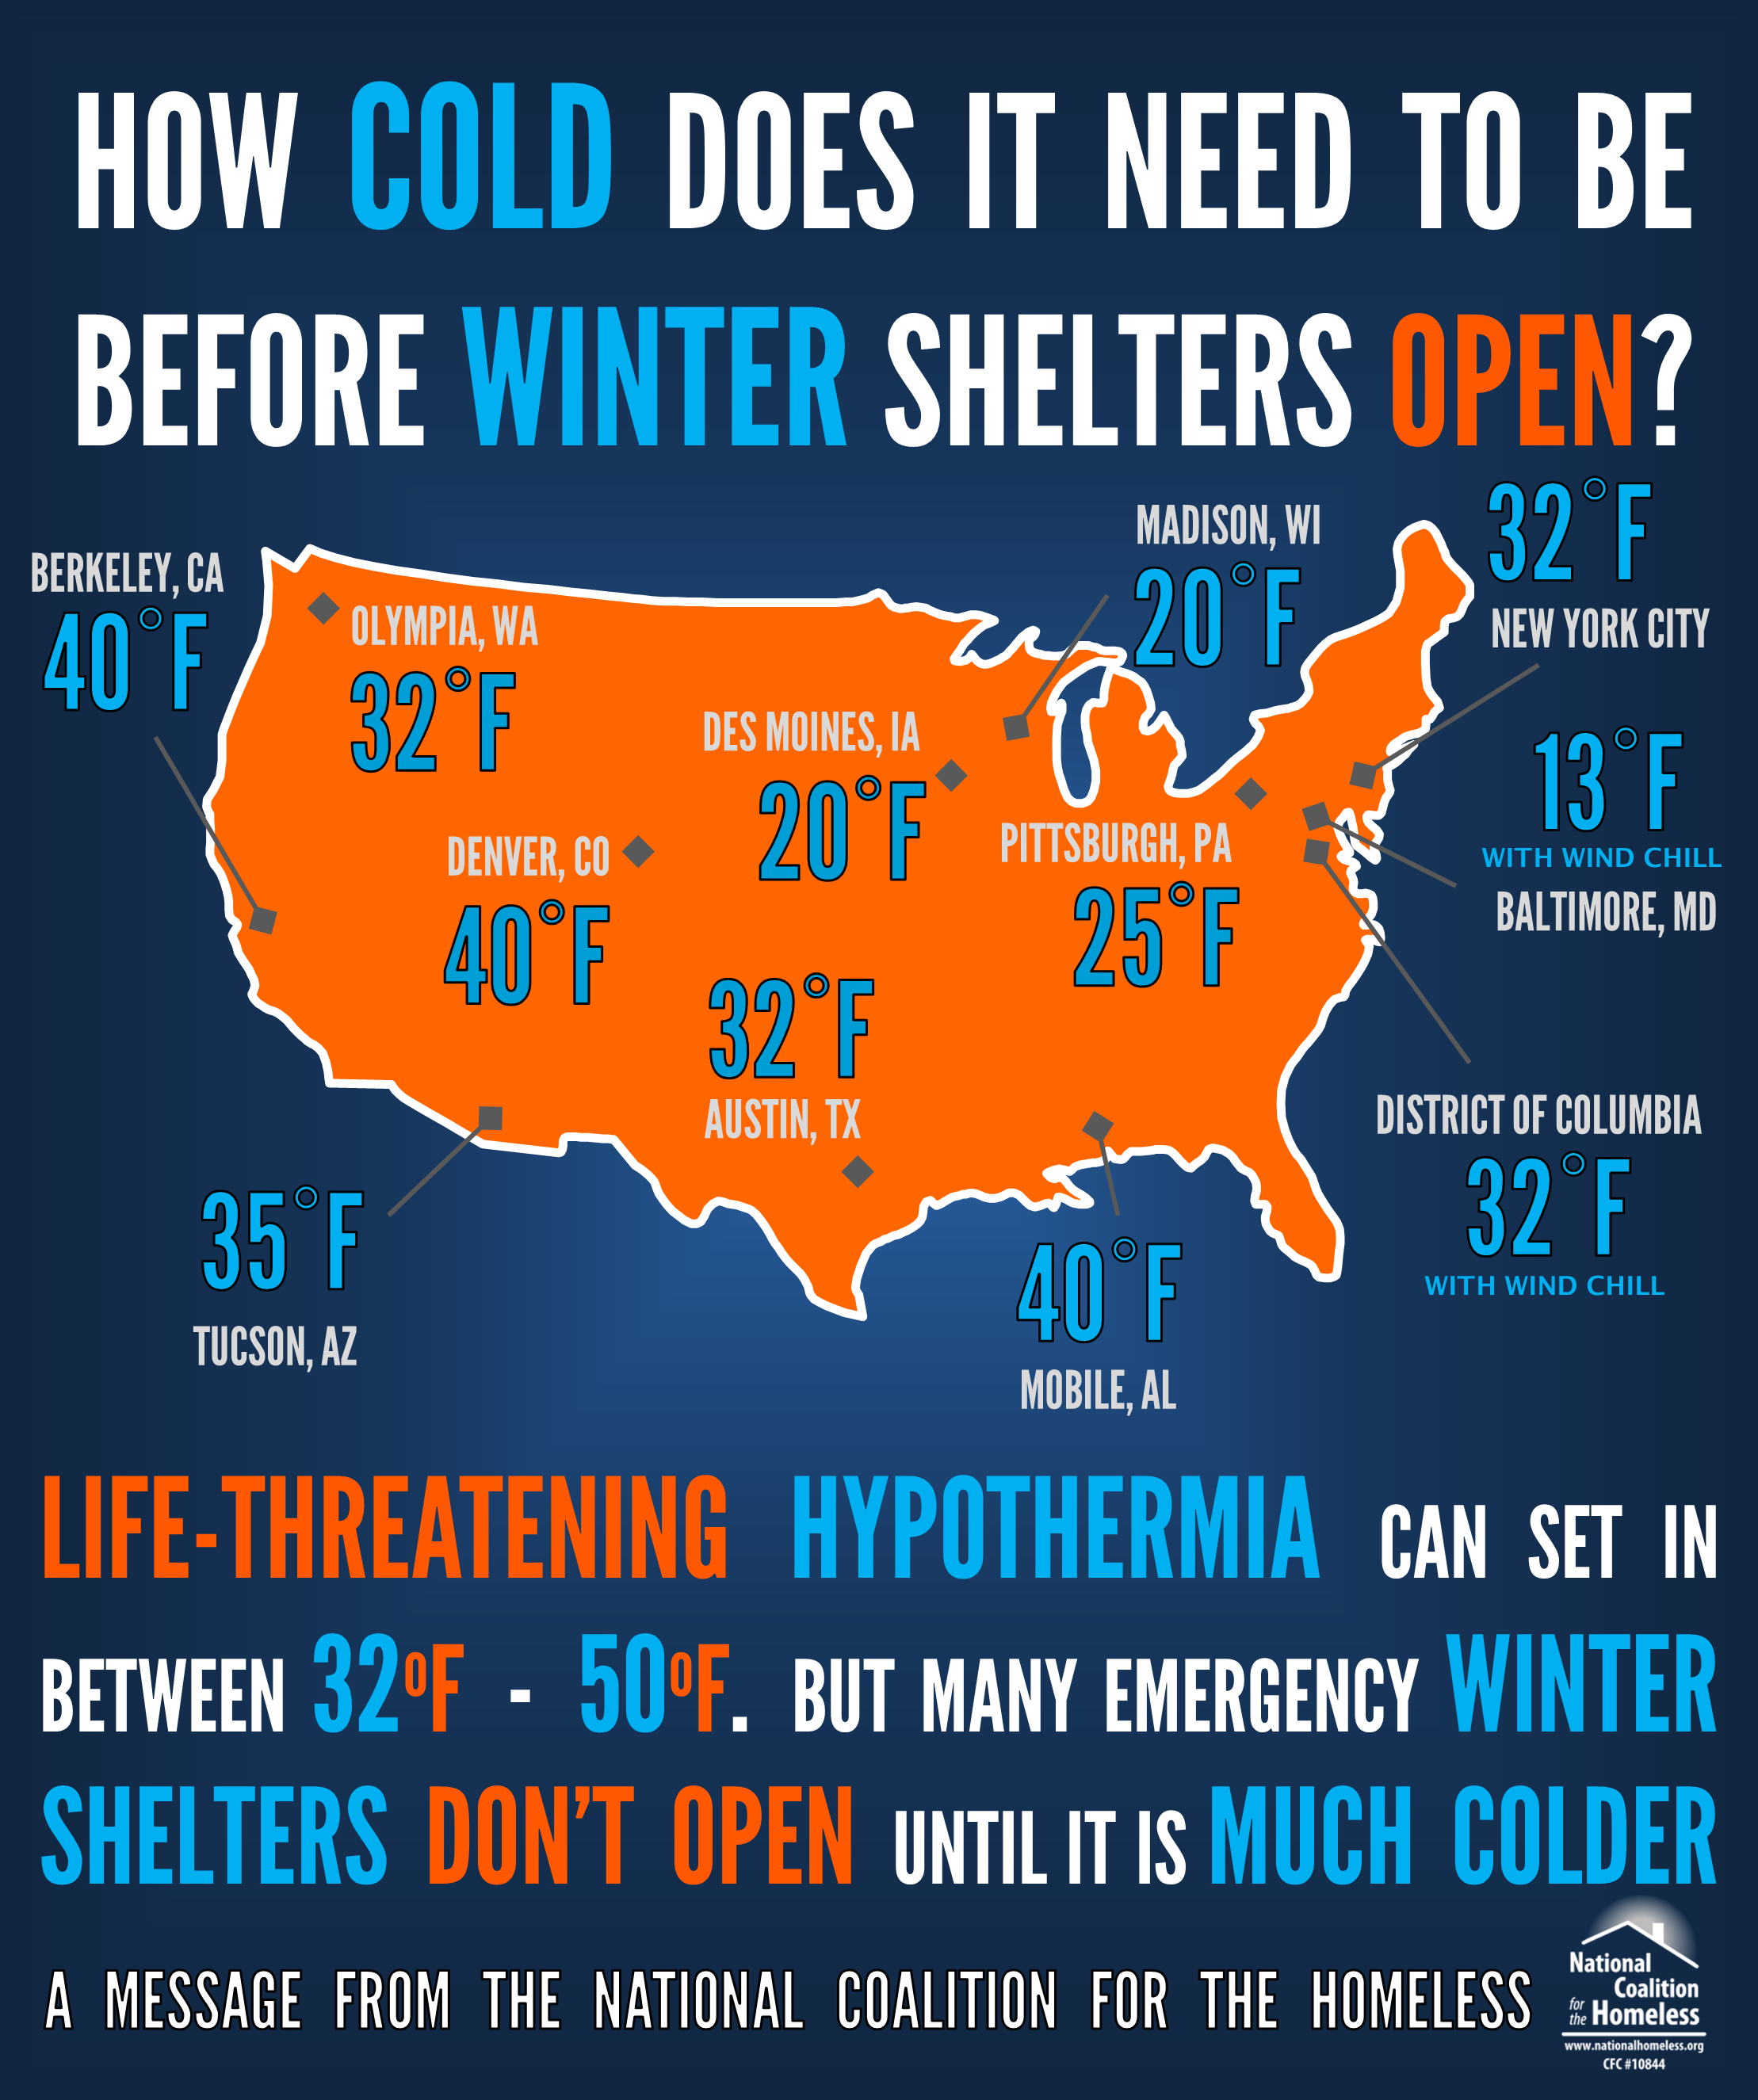 Infographic on when emergency shelter opens during cold weather